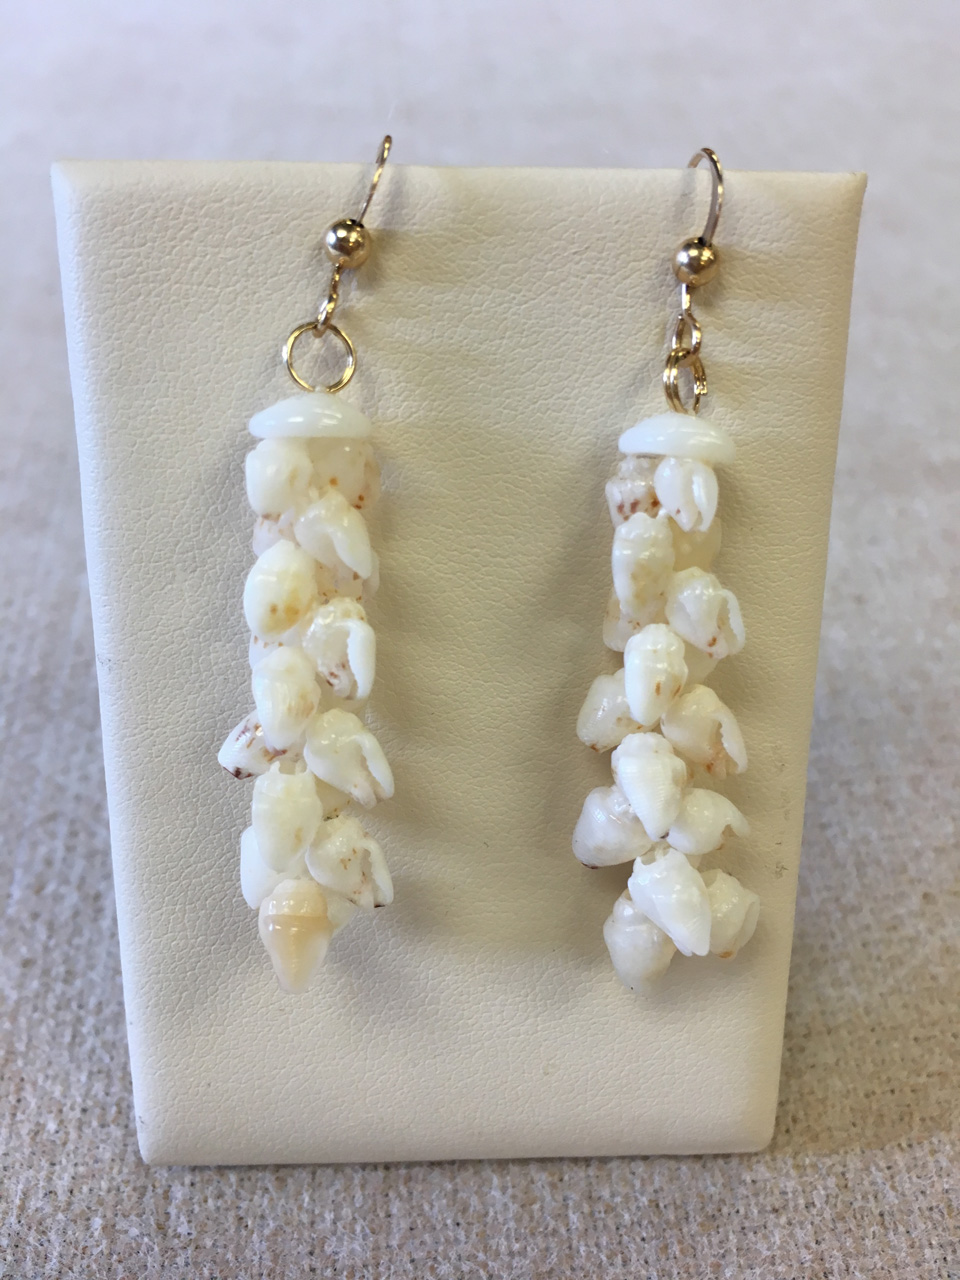 Niihau Niʻihau Momi Keʻokeʻo Earrings